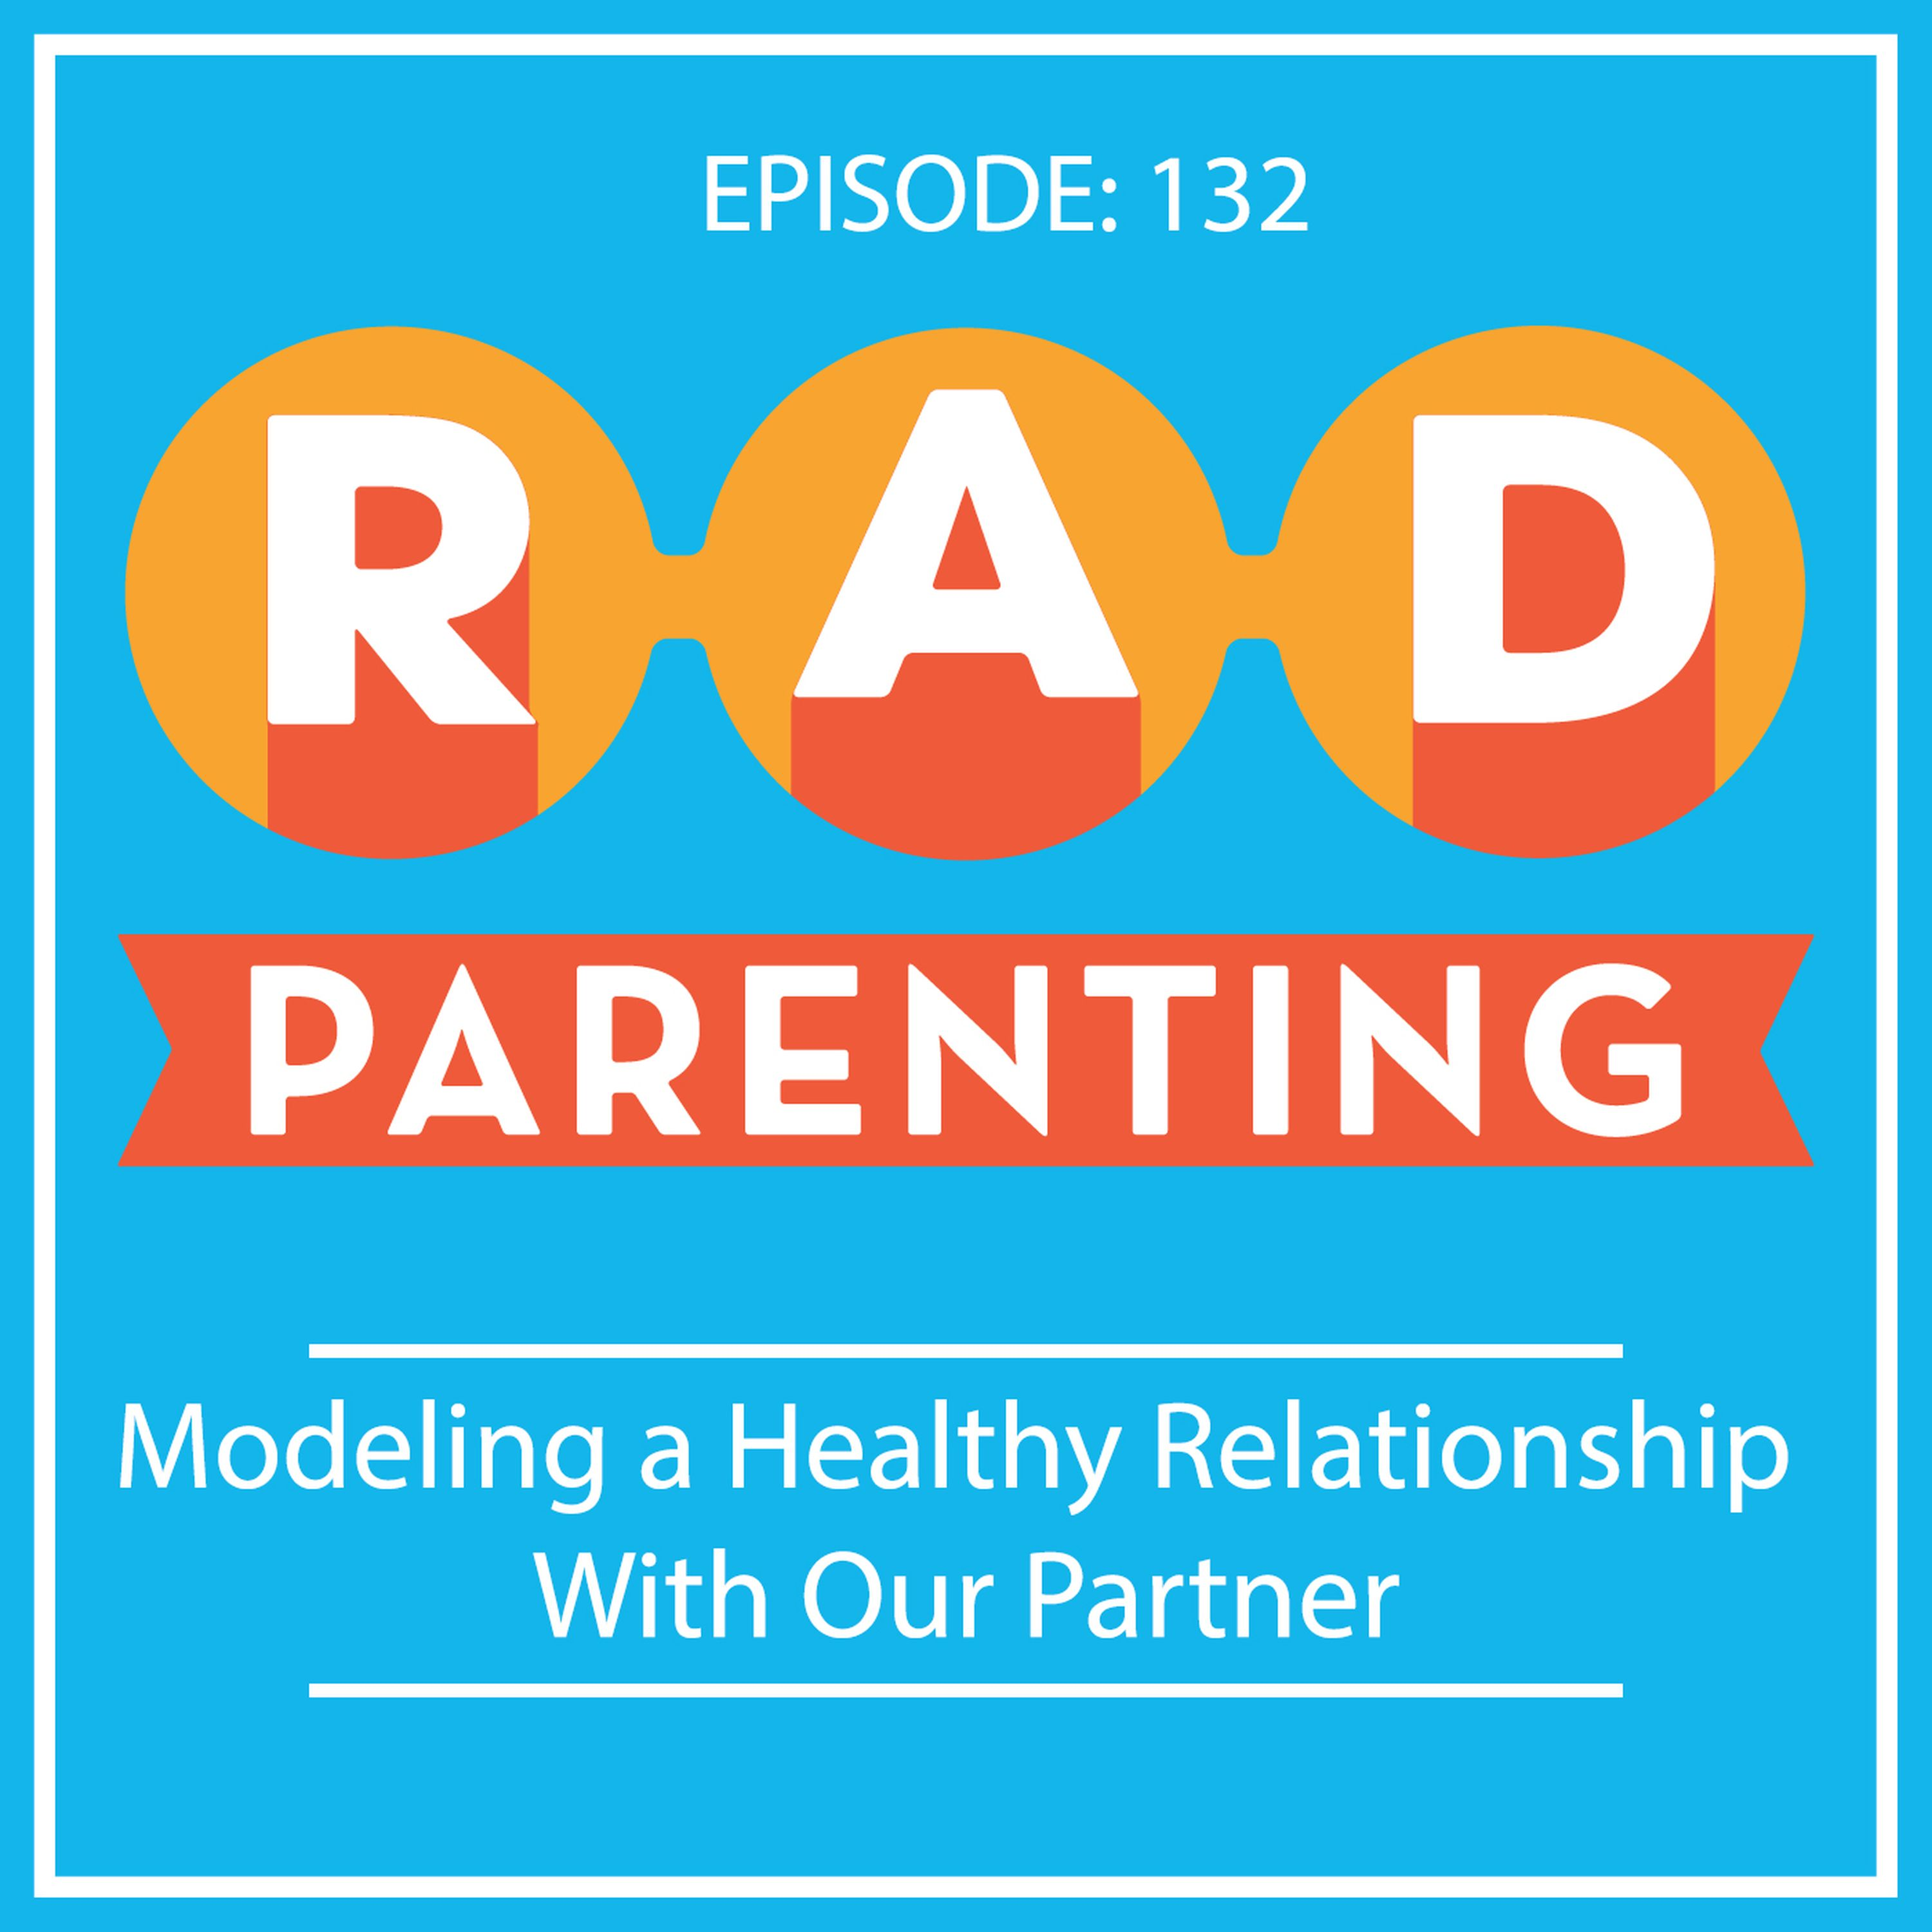 Modeling a Healthy Relationship With Our Partner